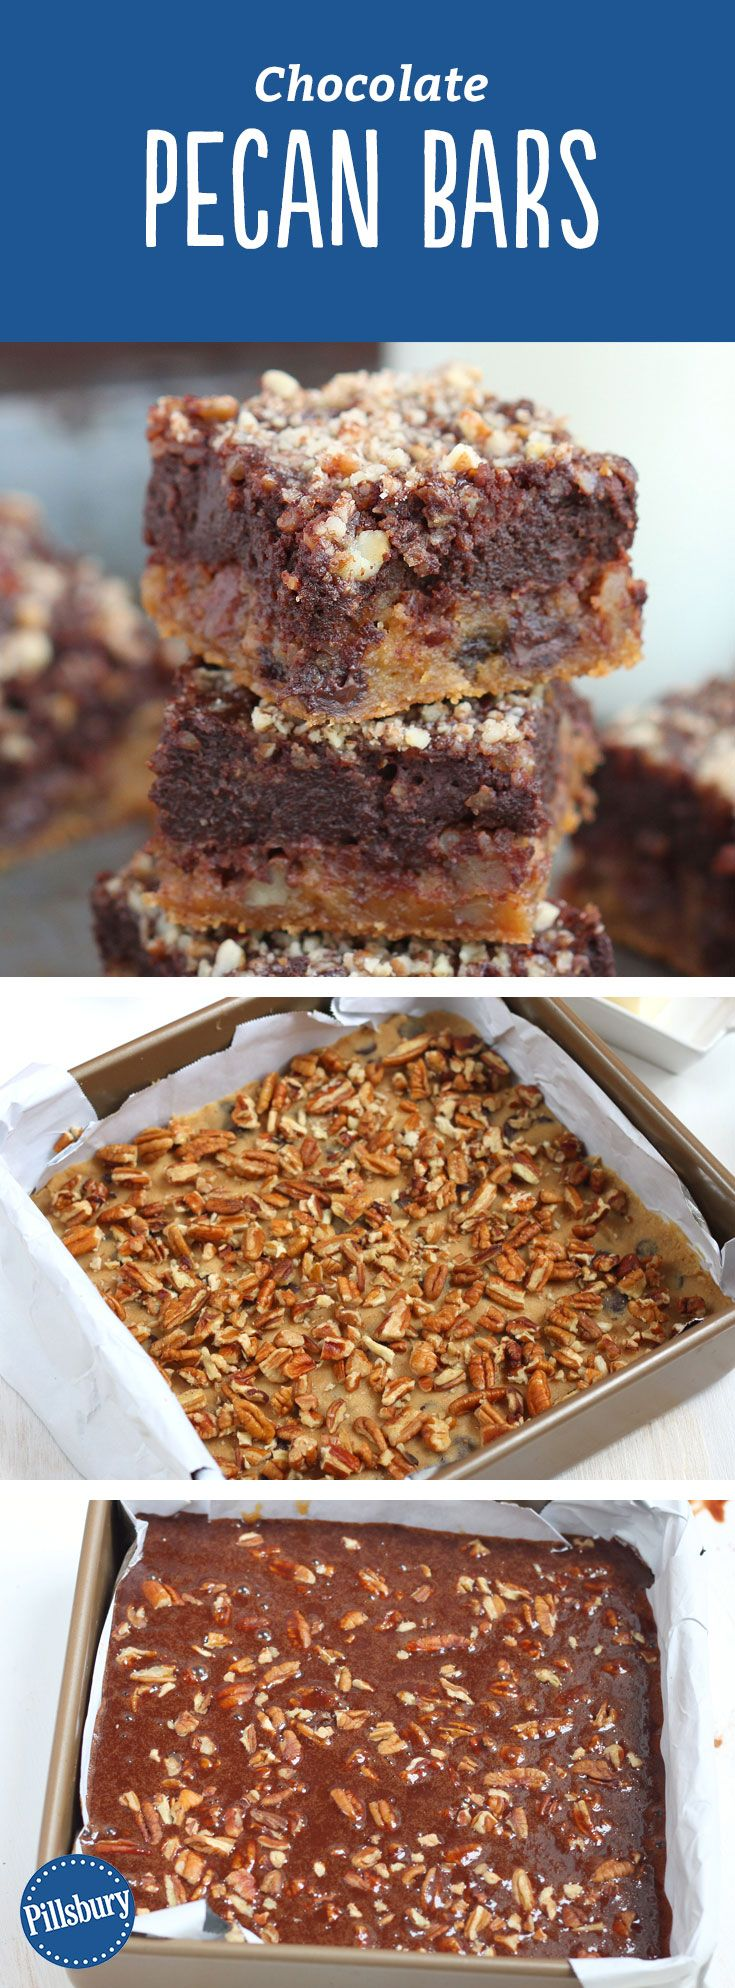 These Chocolate Pecan Bars went overboard on gooeyness topped with chocolate and pecans. We recommend making them over and over again.